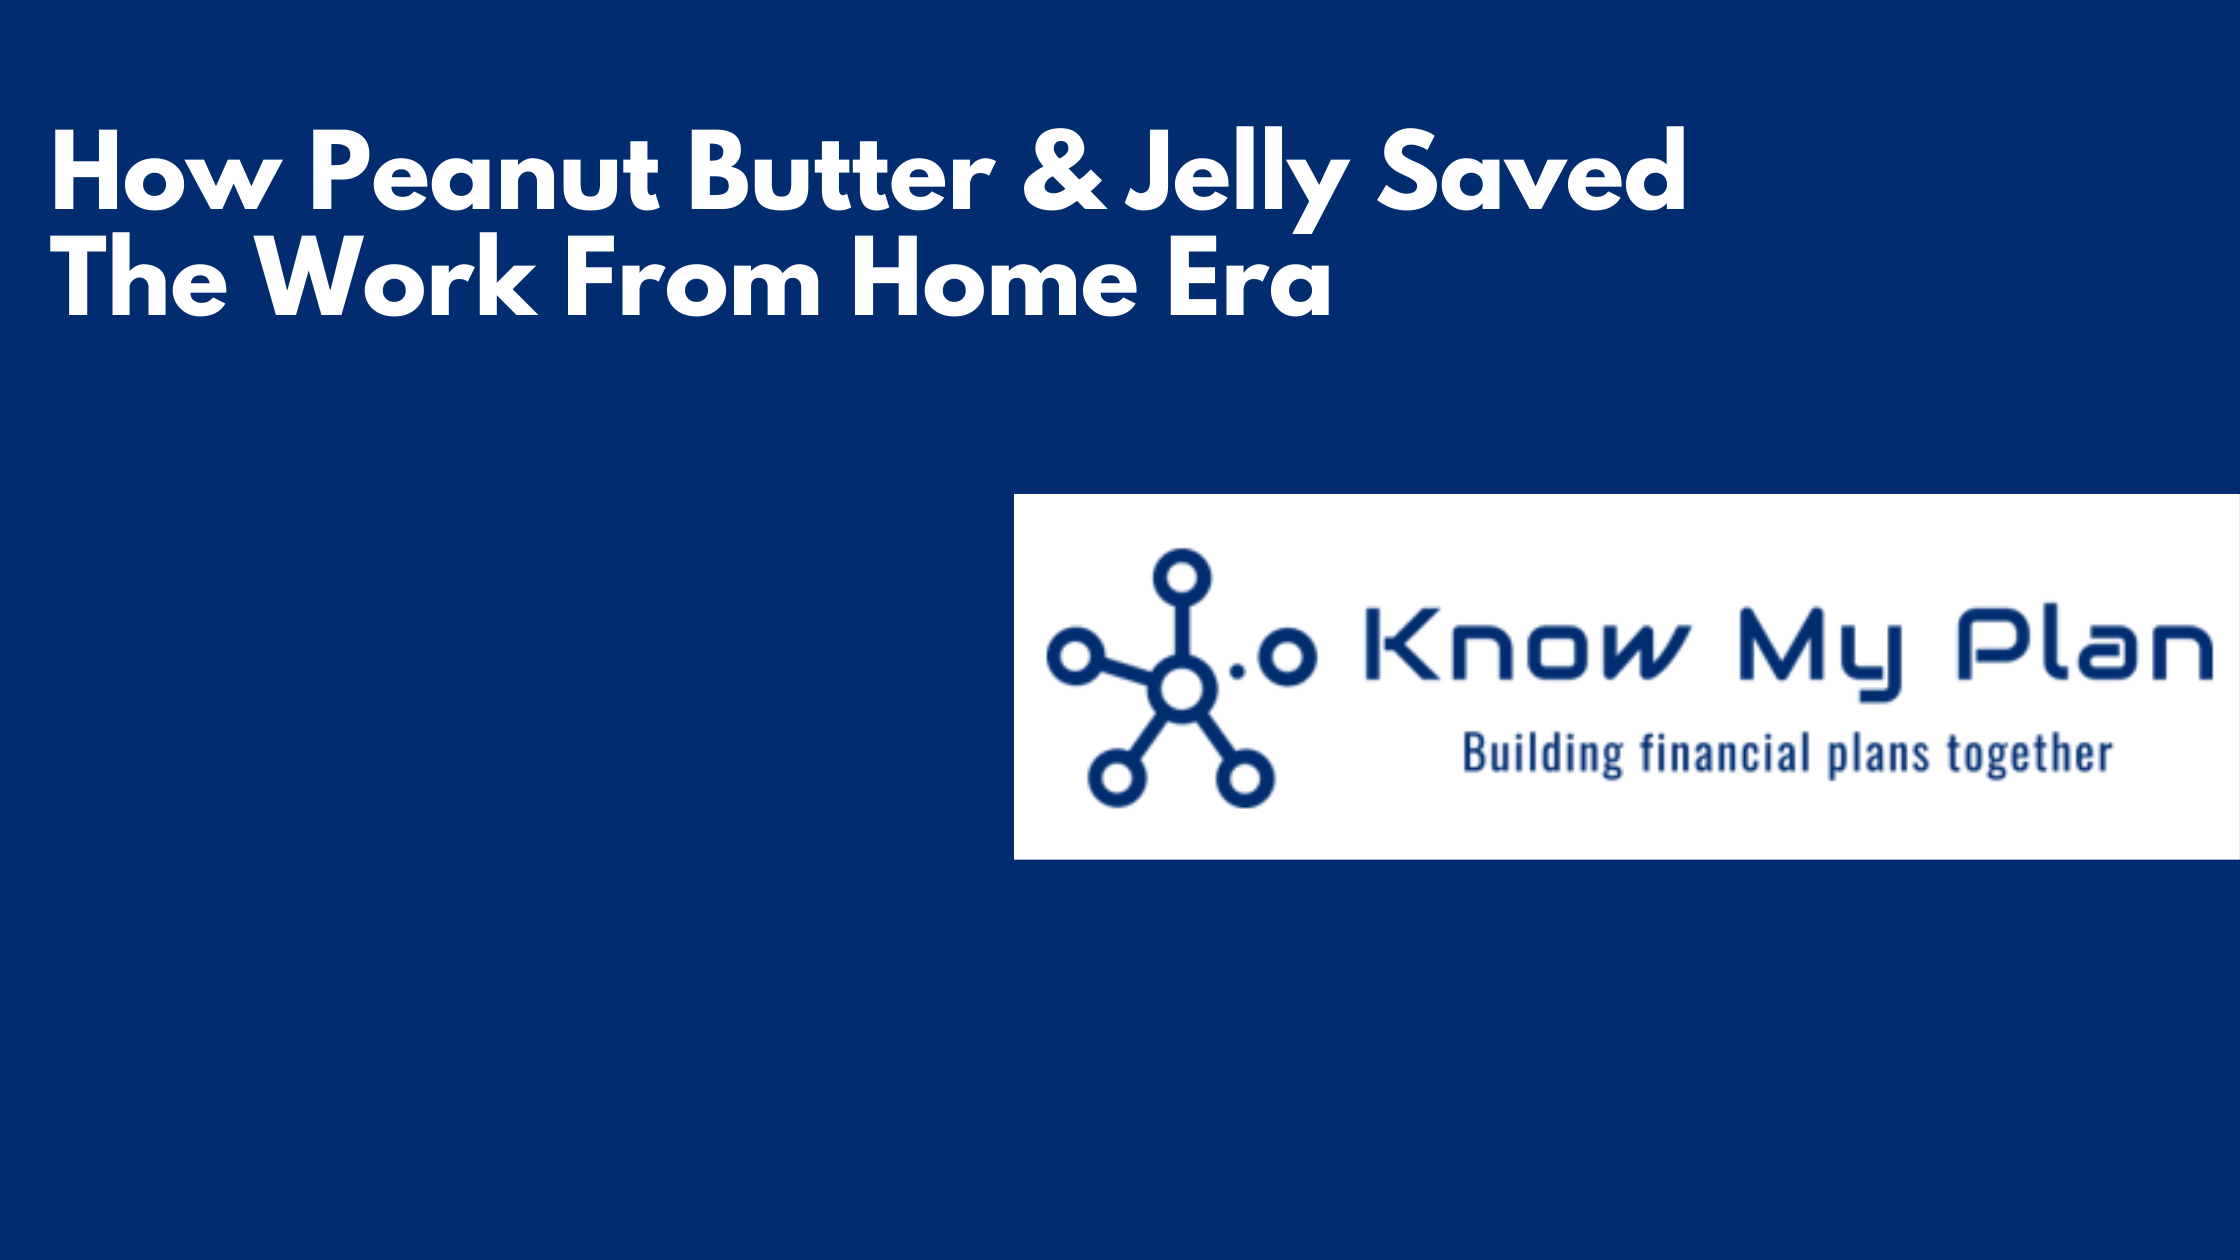 How Peanut Butter & Jelly Saved The Work From Home Era Thumbnail